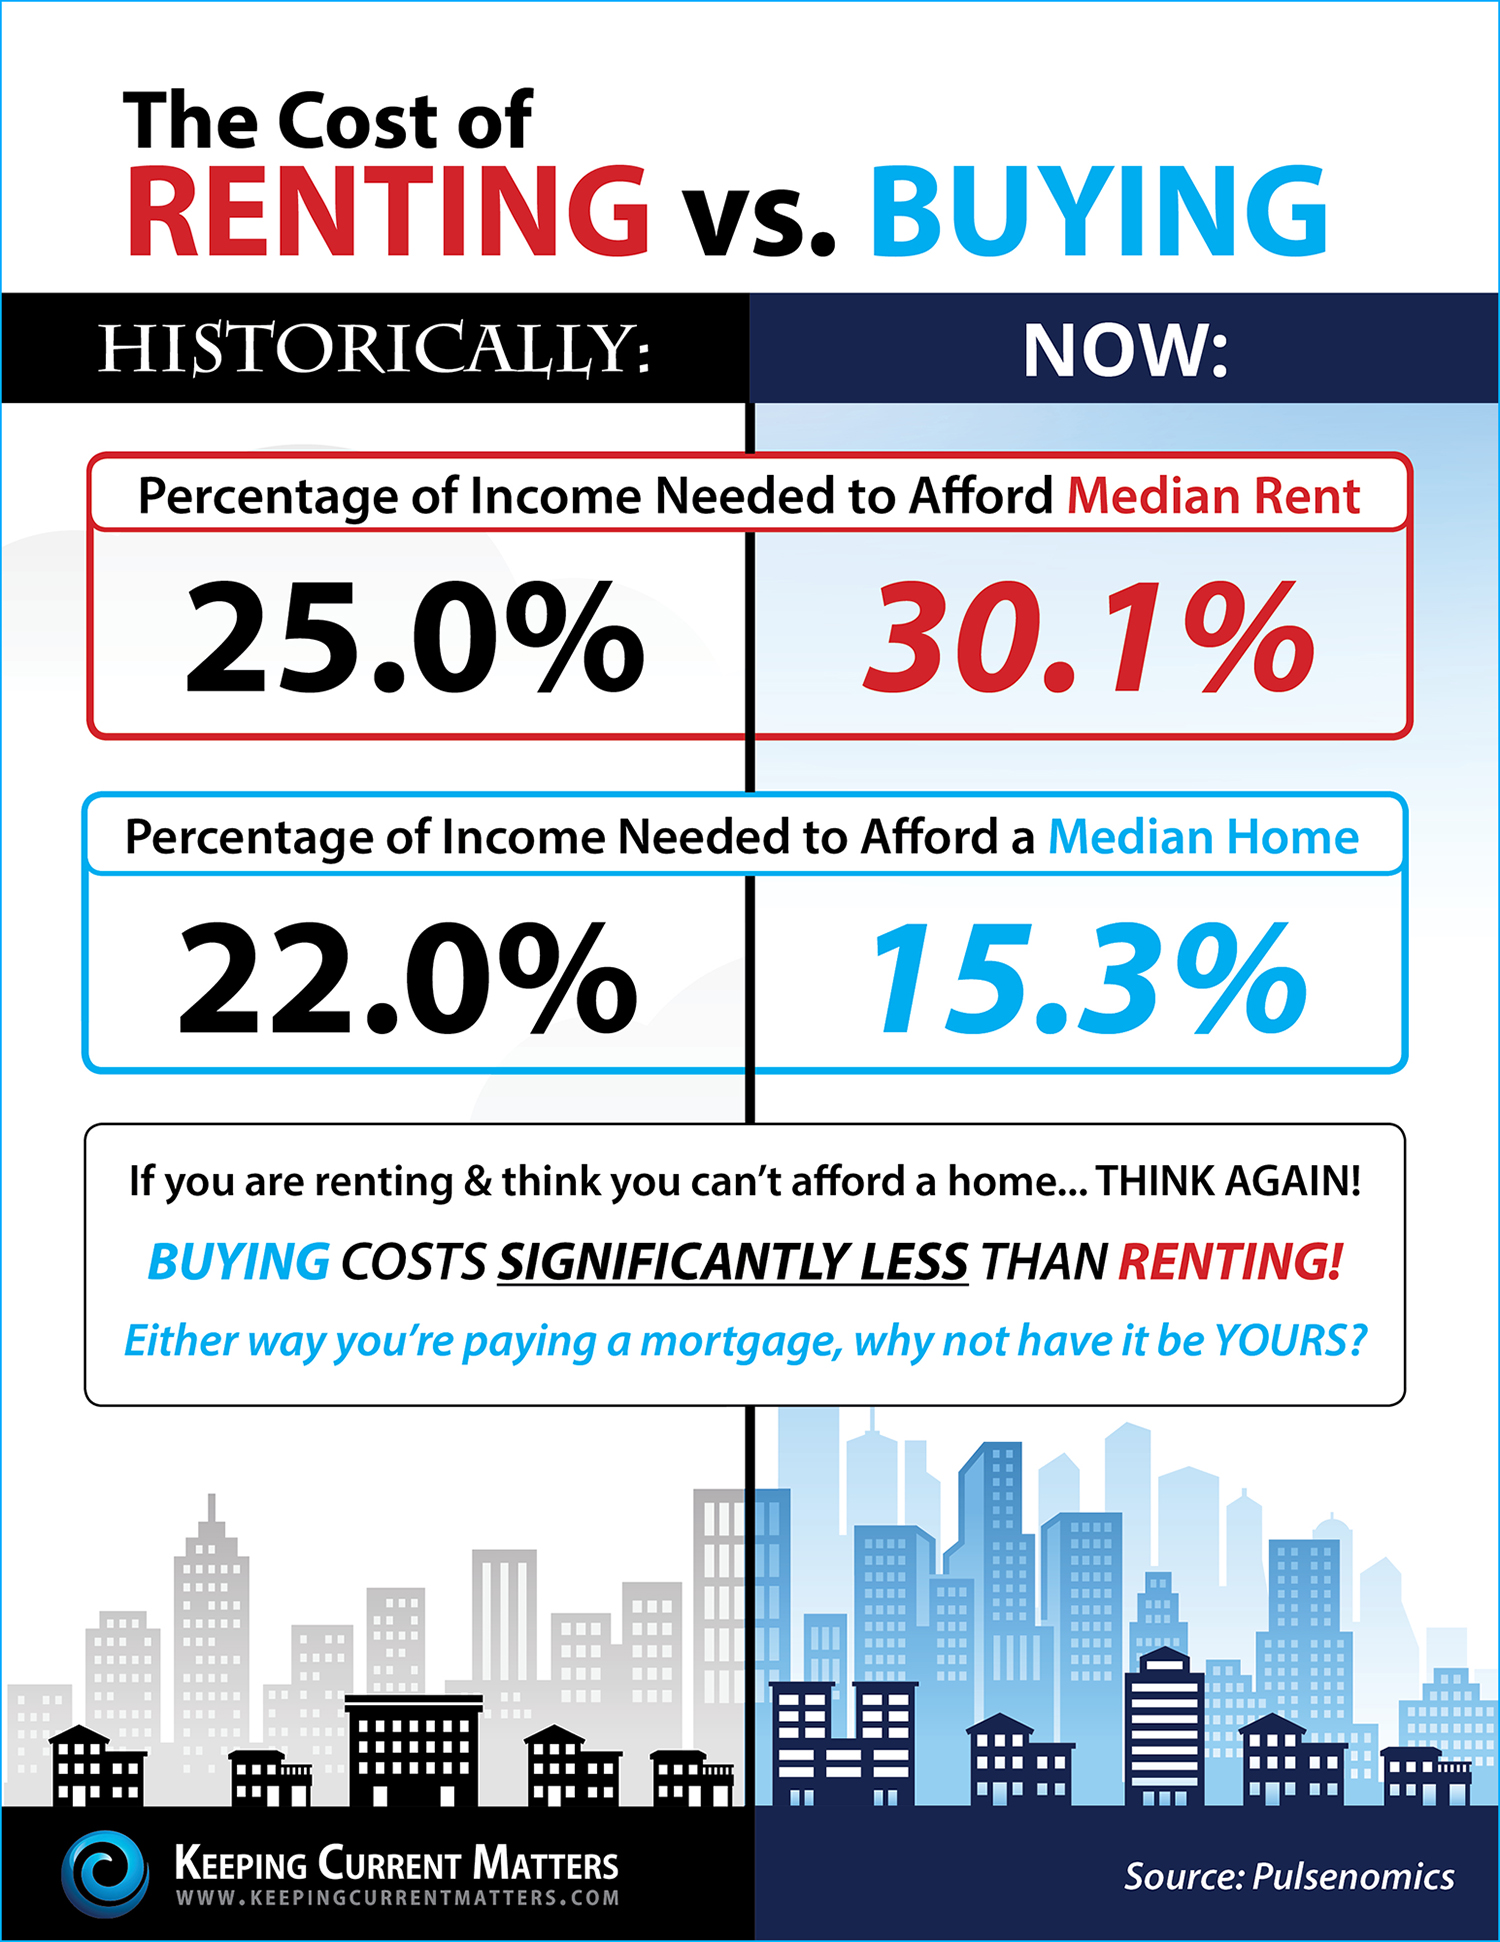 Rent-vs.-Buy-KCM.jpg